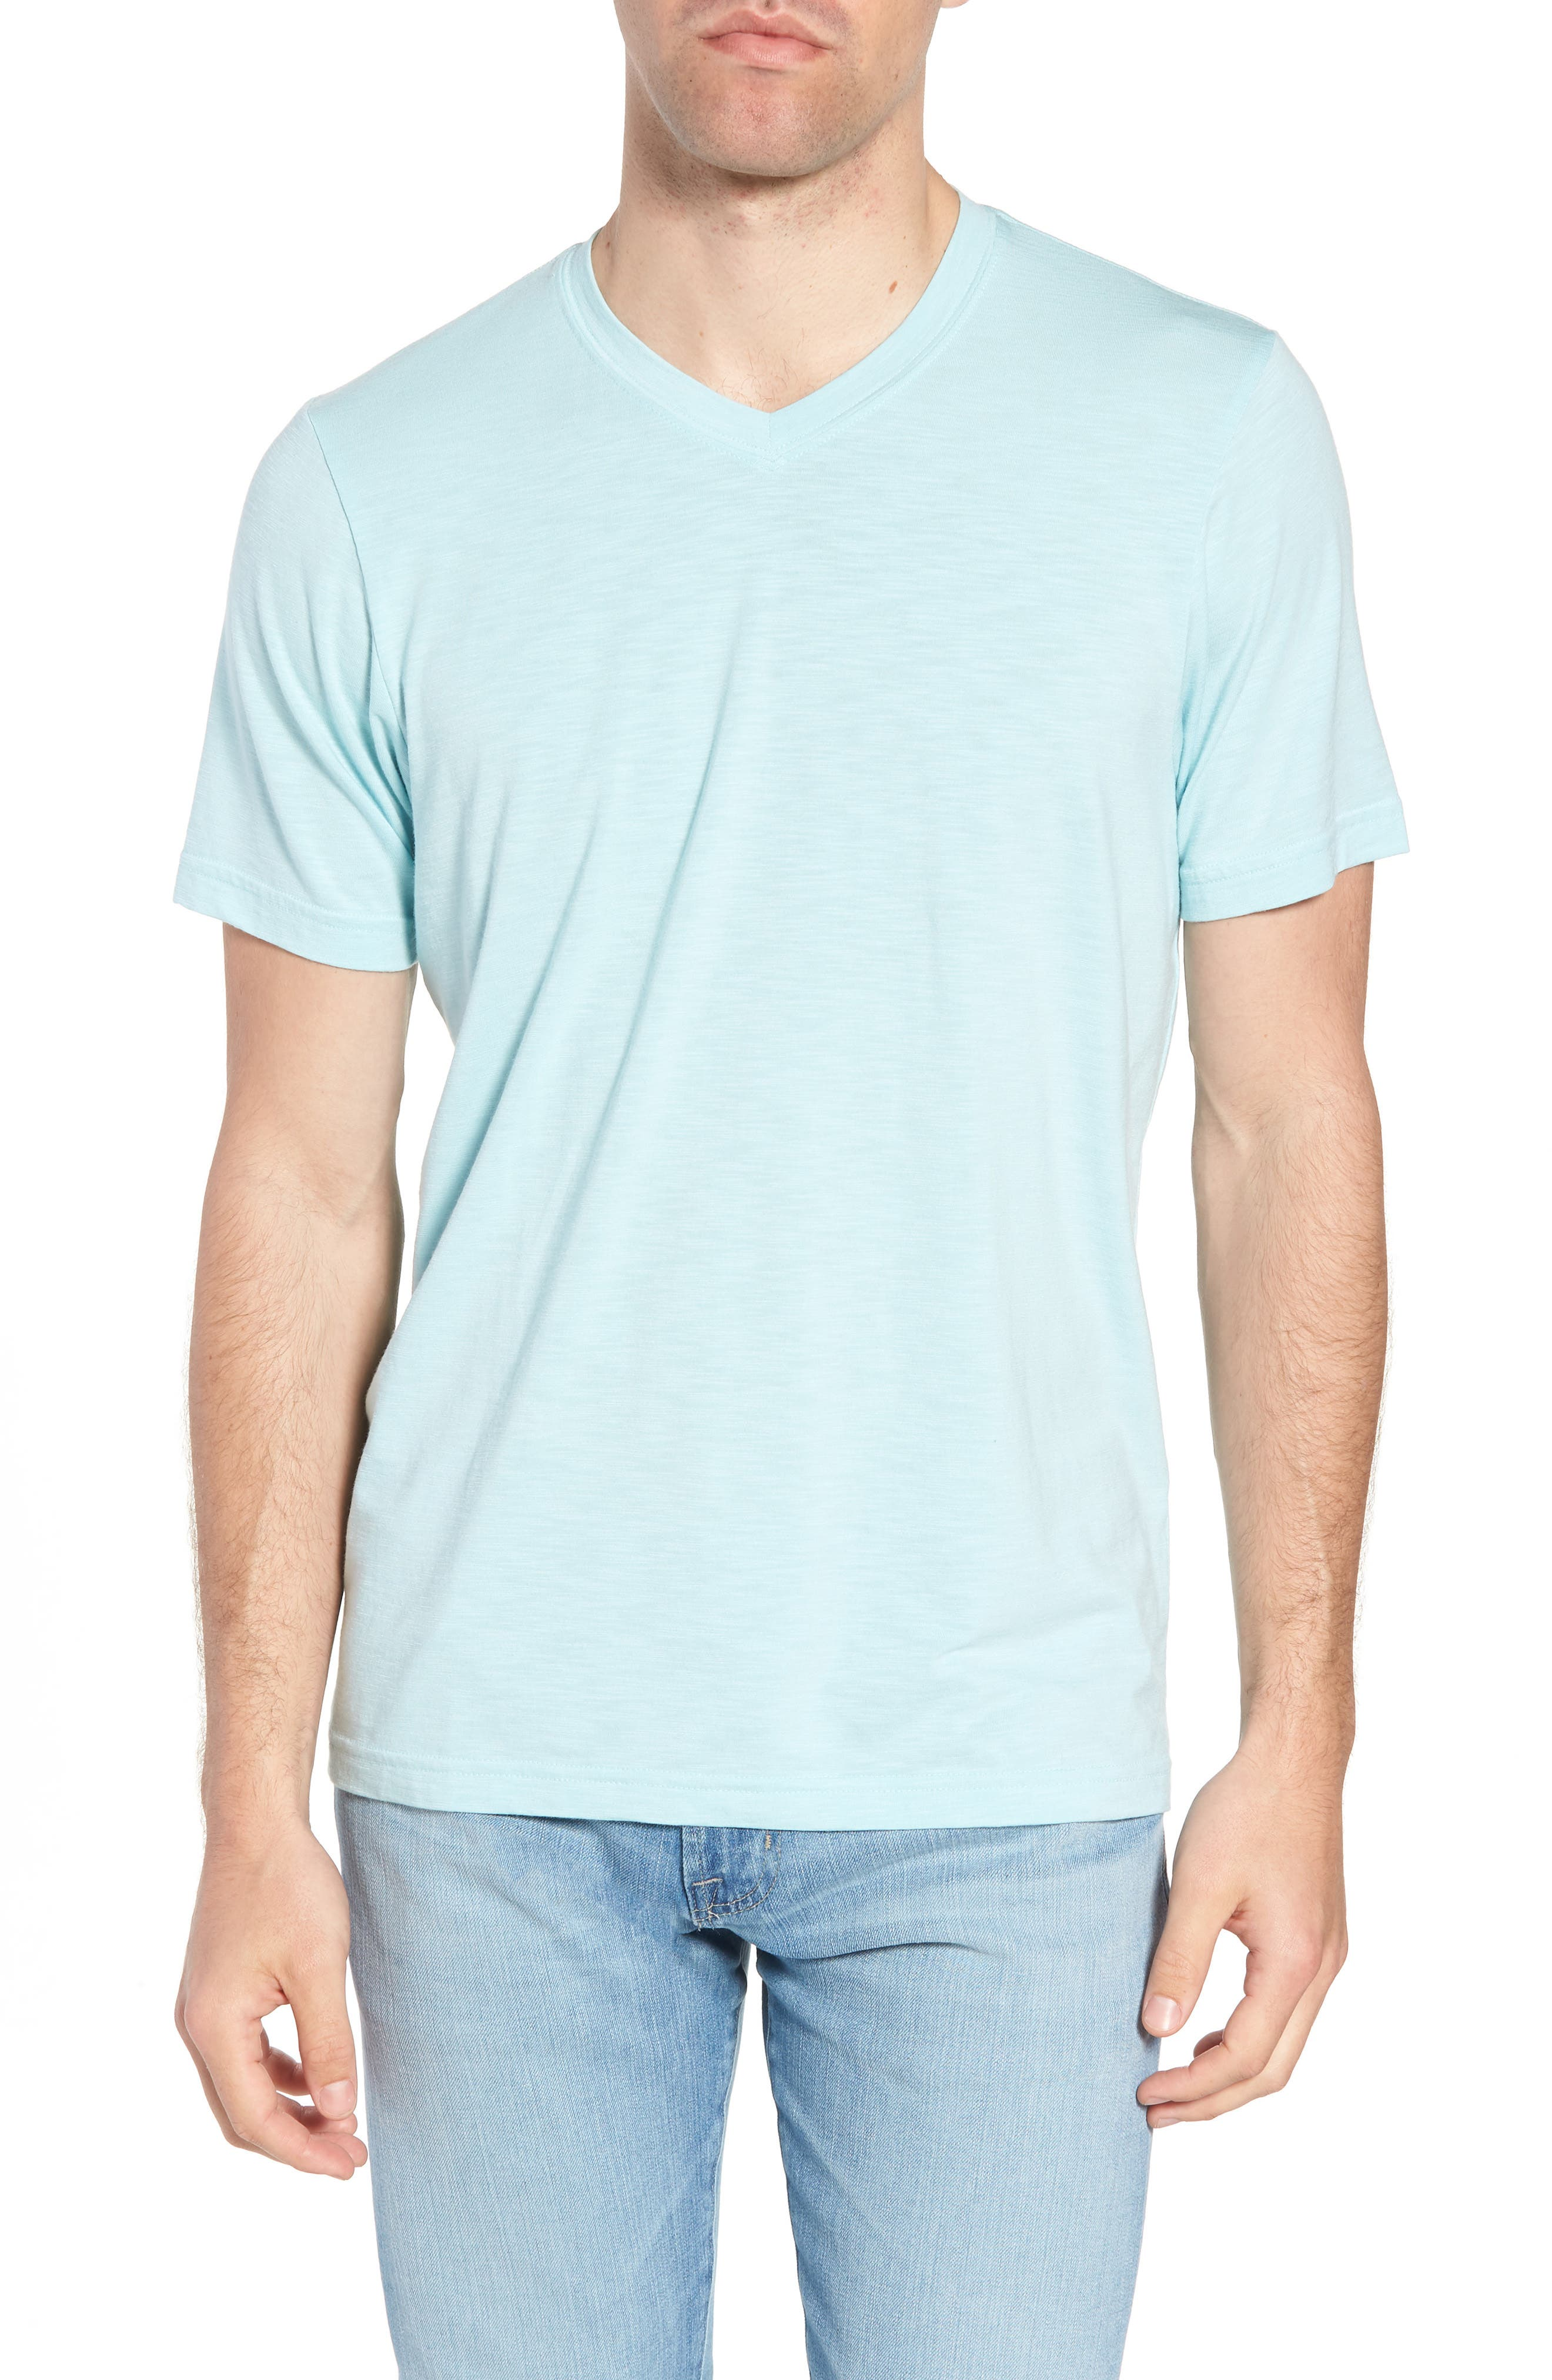 'Trumbull' Trim Fit Slubbed T-Shirt,                             Main thumbnail 1, color,                             PORCELAIN BLUE